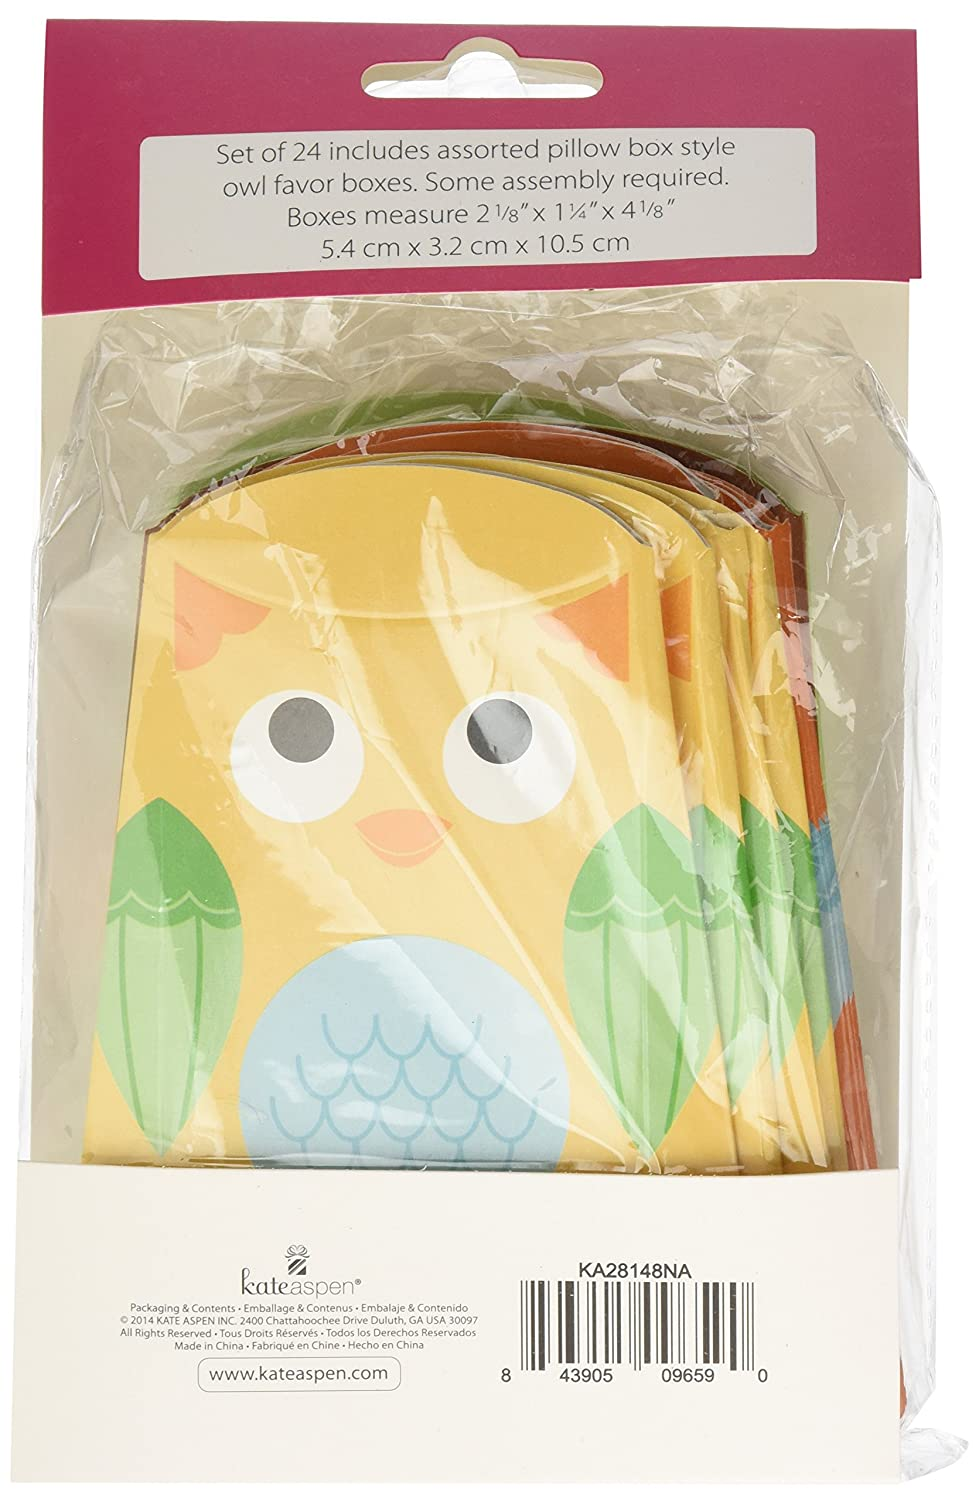 Amazon.com : Kate Aspen Set of 24 Owl Favor Box, Whooos Happy : Baby Gift Sets : Baby